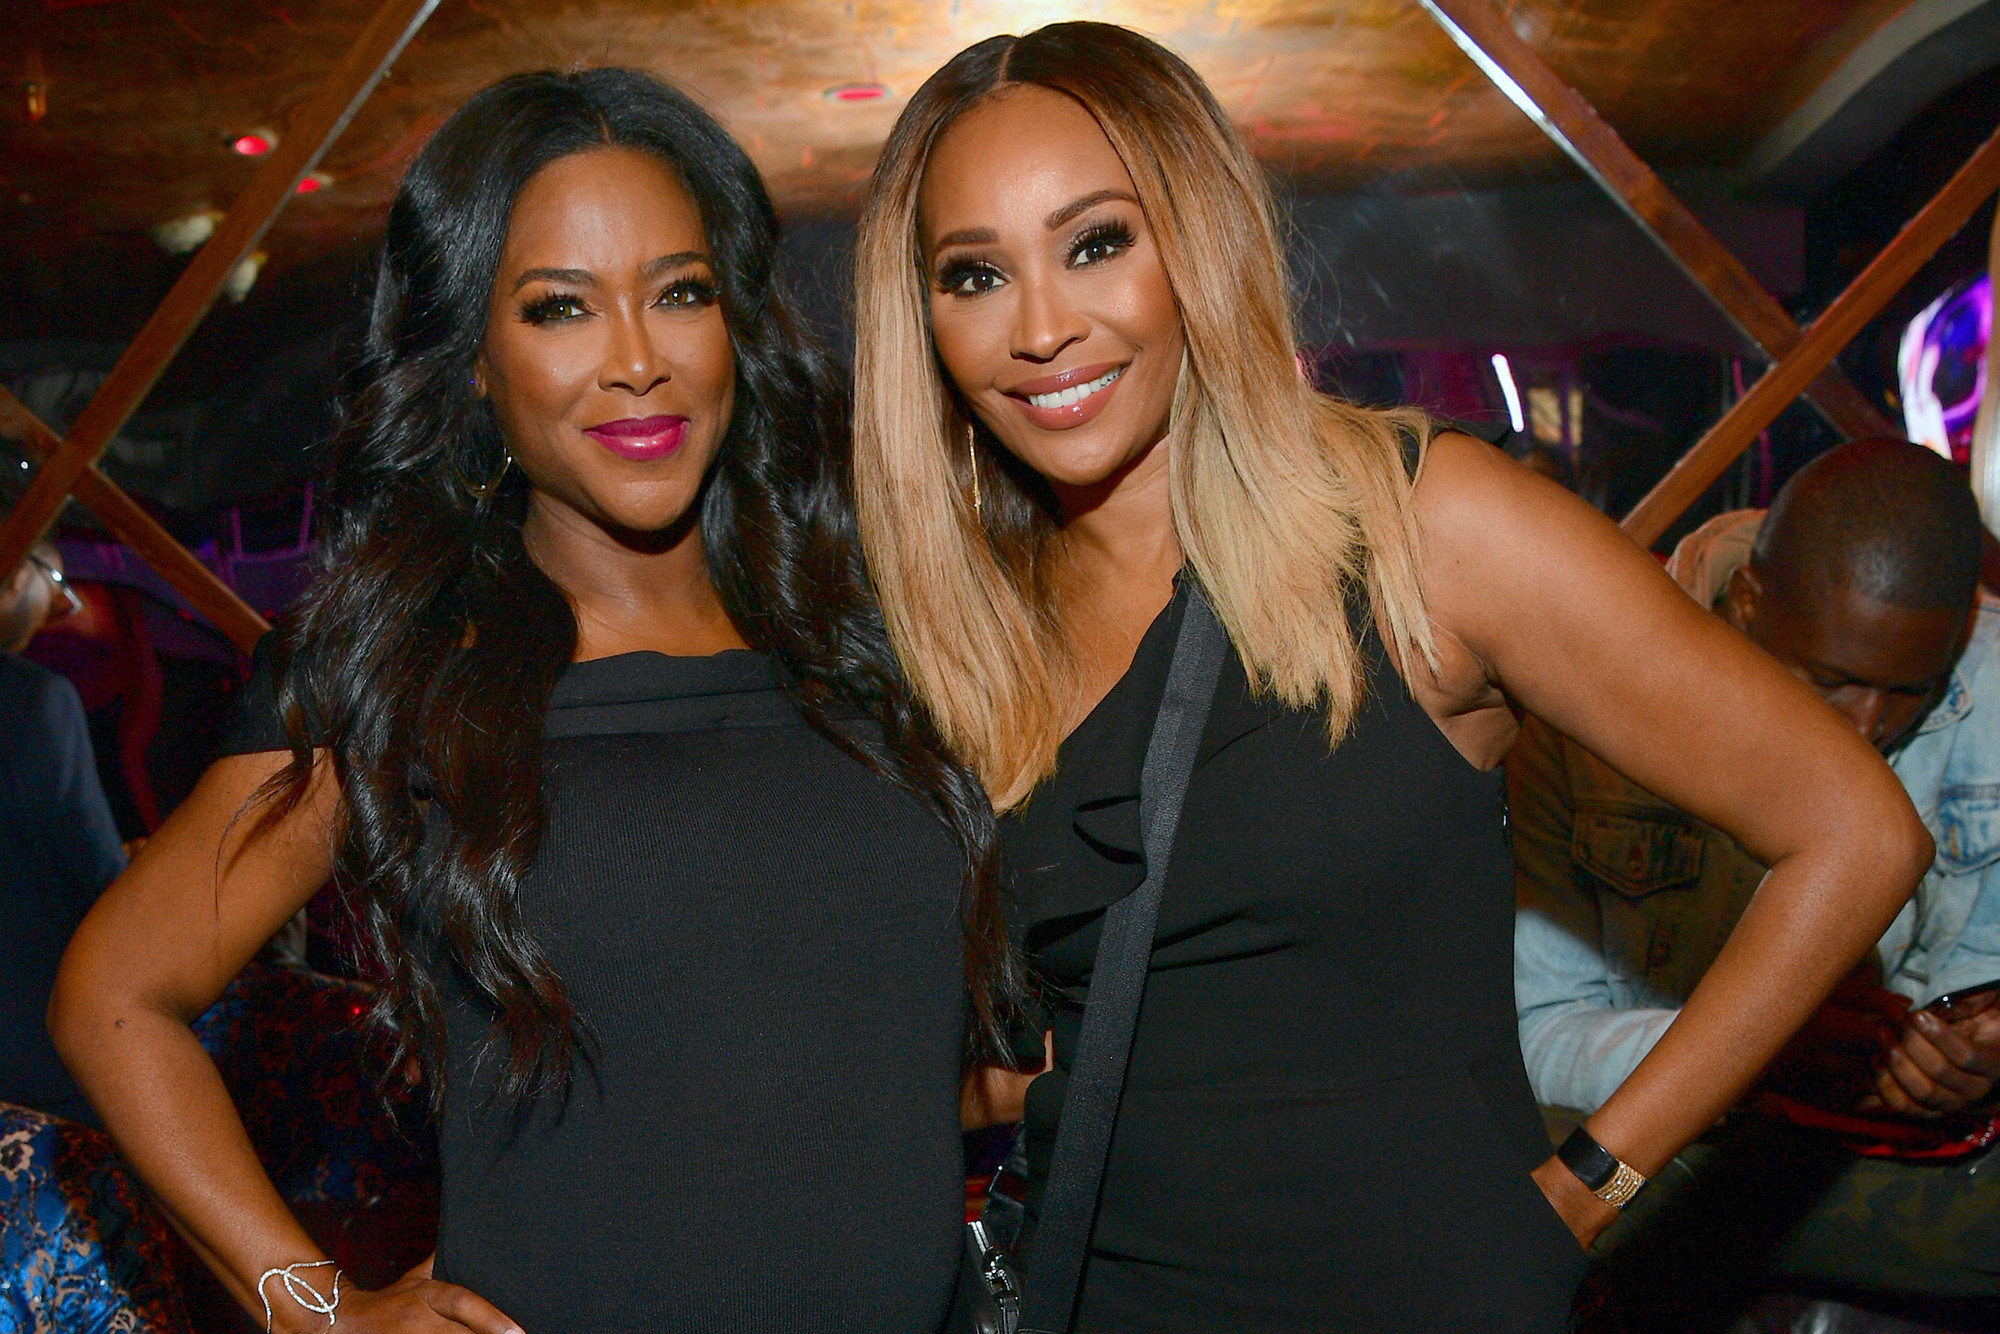 Kenya Moore's Latest Video Has Fans Saying That NeNe Leakes Will Be Mad Seeing That She And Cynthia Bailey Get Along So Great